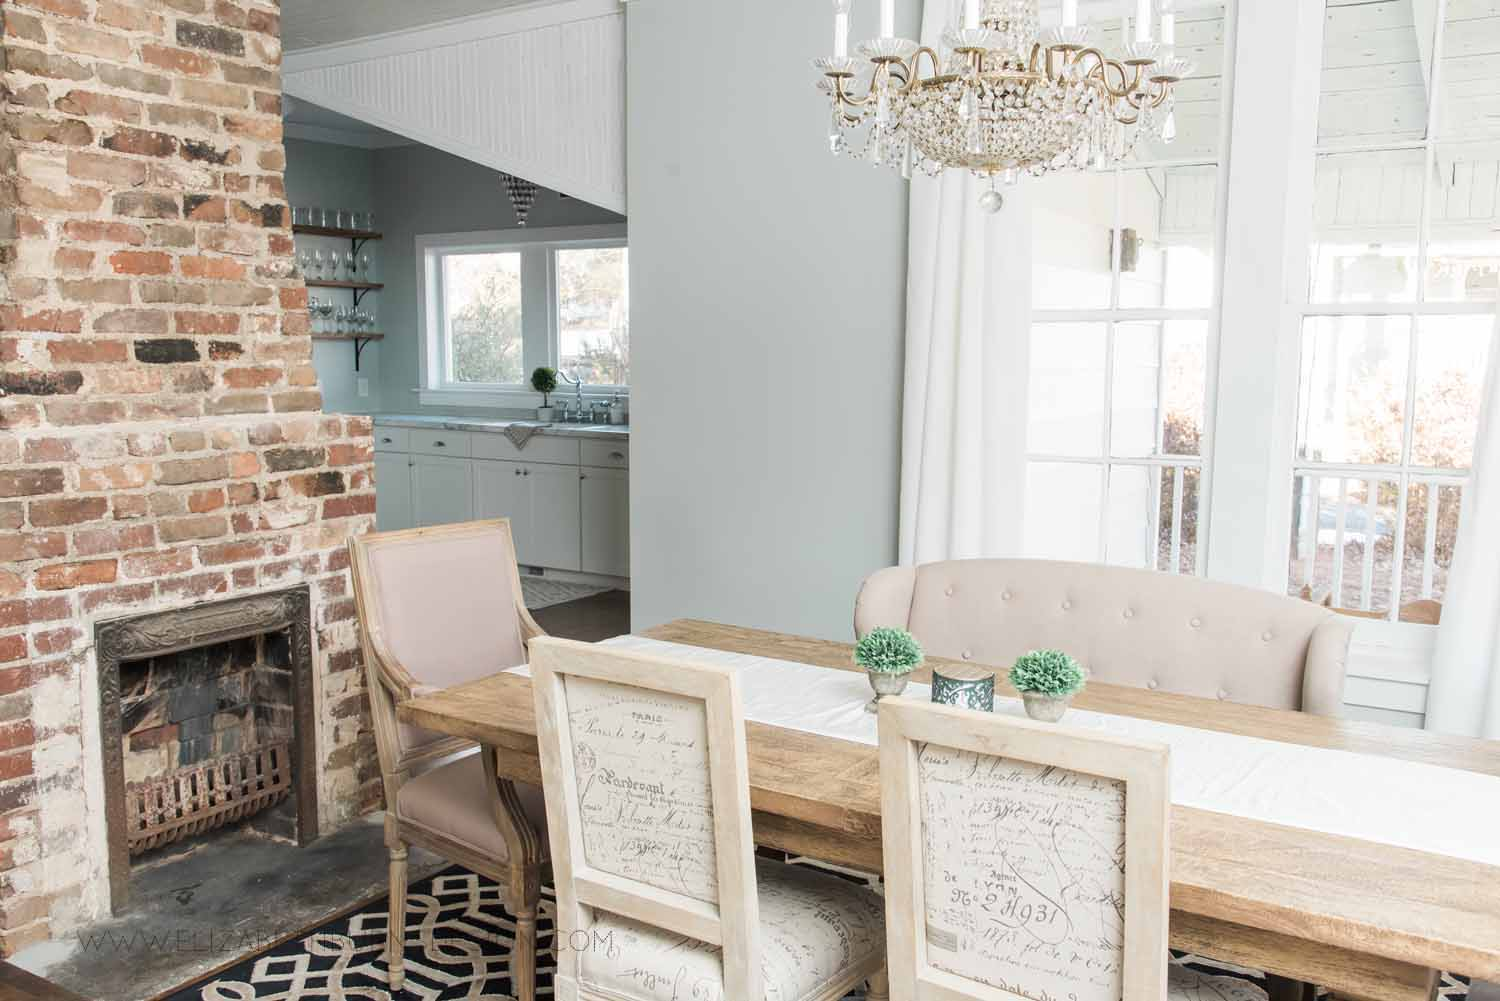 Elizabeth Burns Design Raleigh Interior Designer  Farmhouse Fixer Upper Cottage Renovation, Sherwin Williams Silver Strand SW 7057 Dining Room (2).jpg